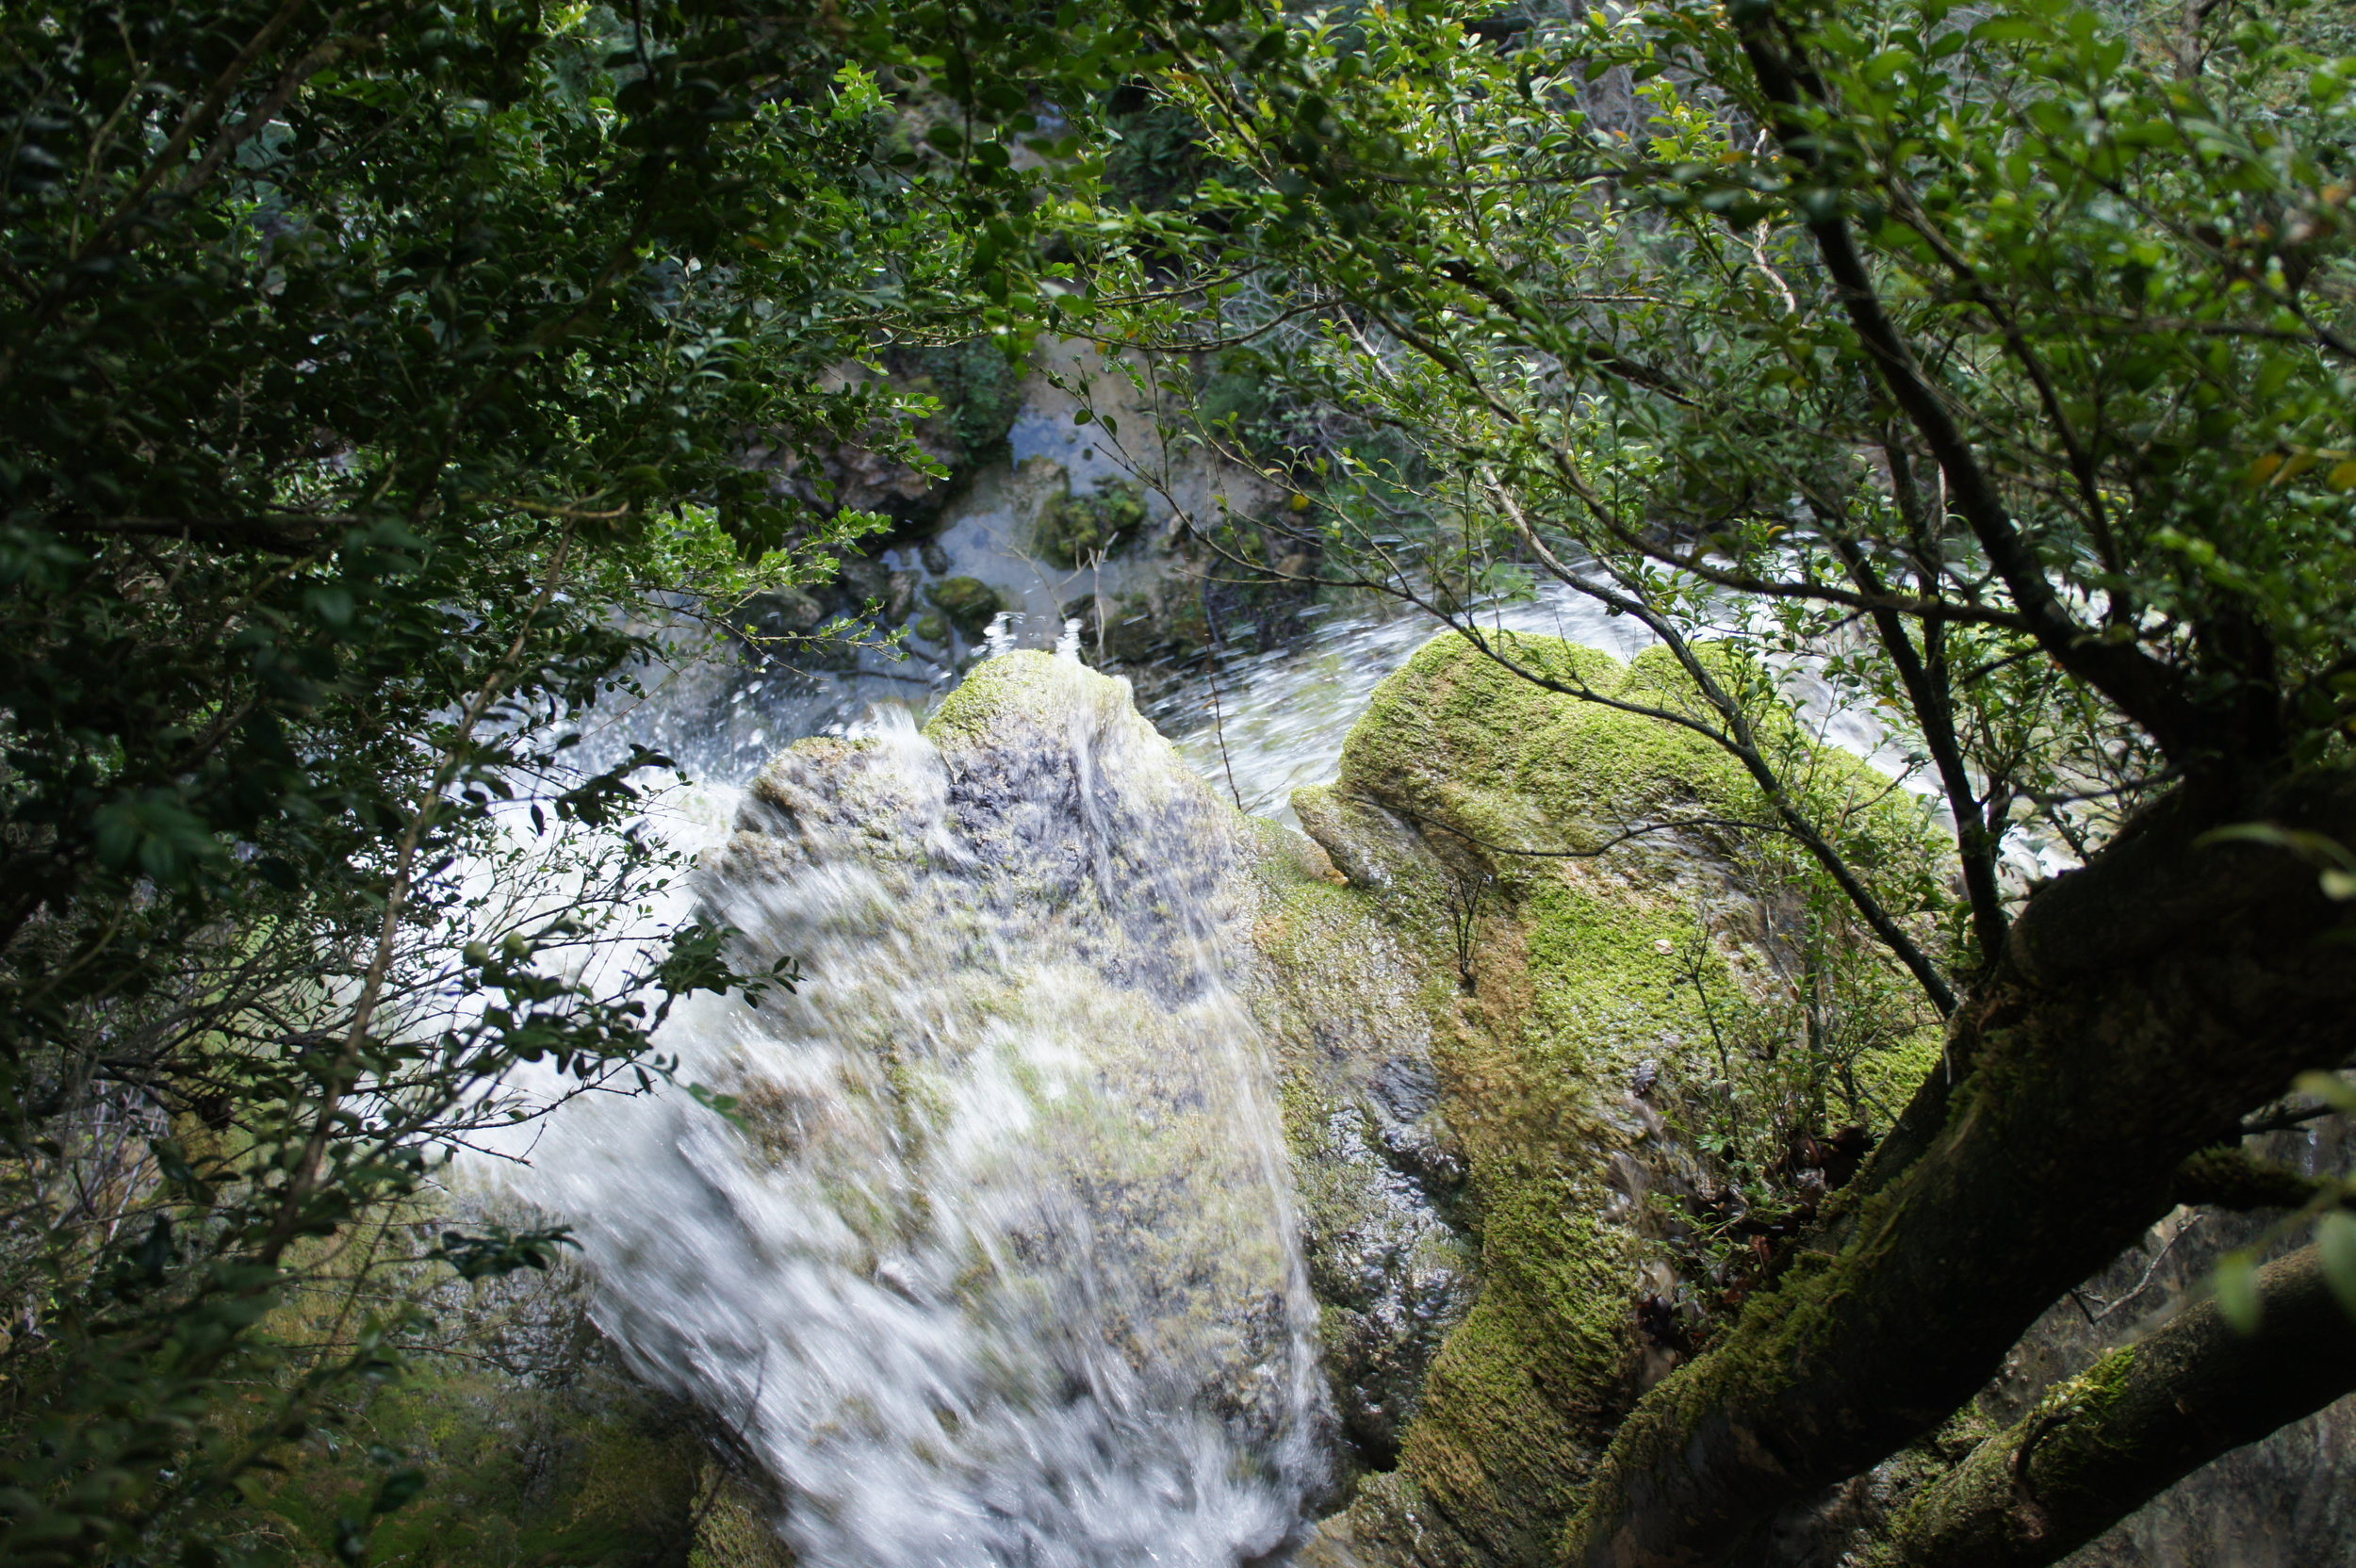 Flow of creativity is like water through a gorge